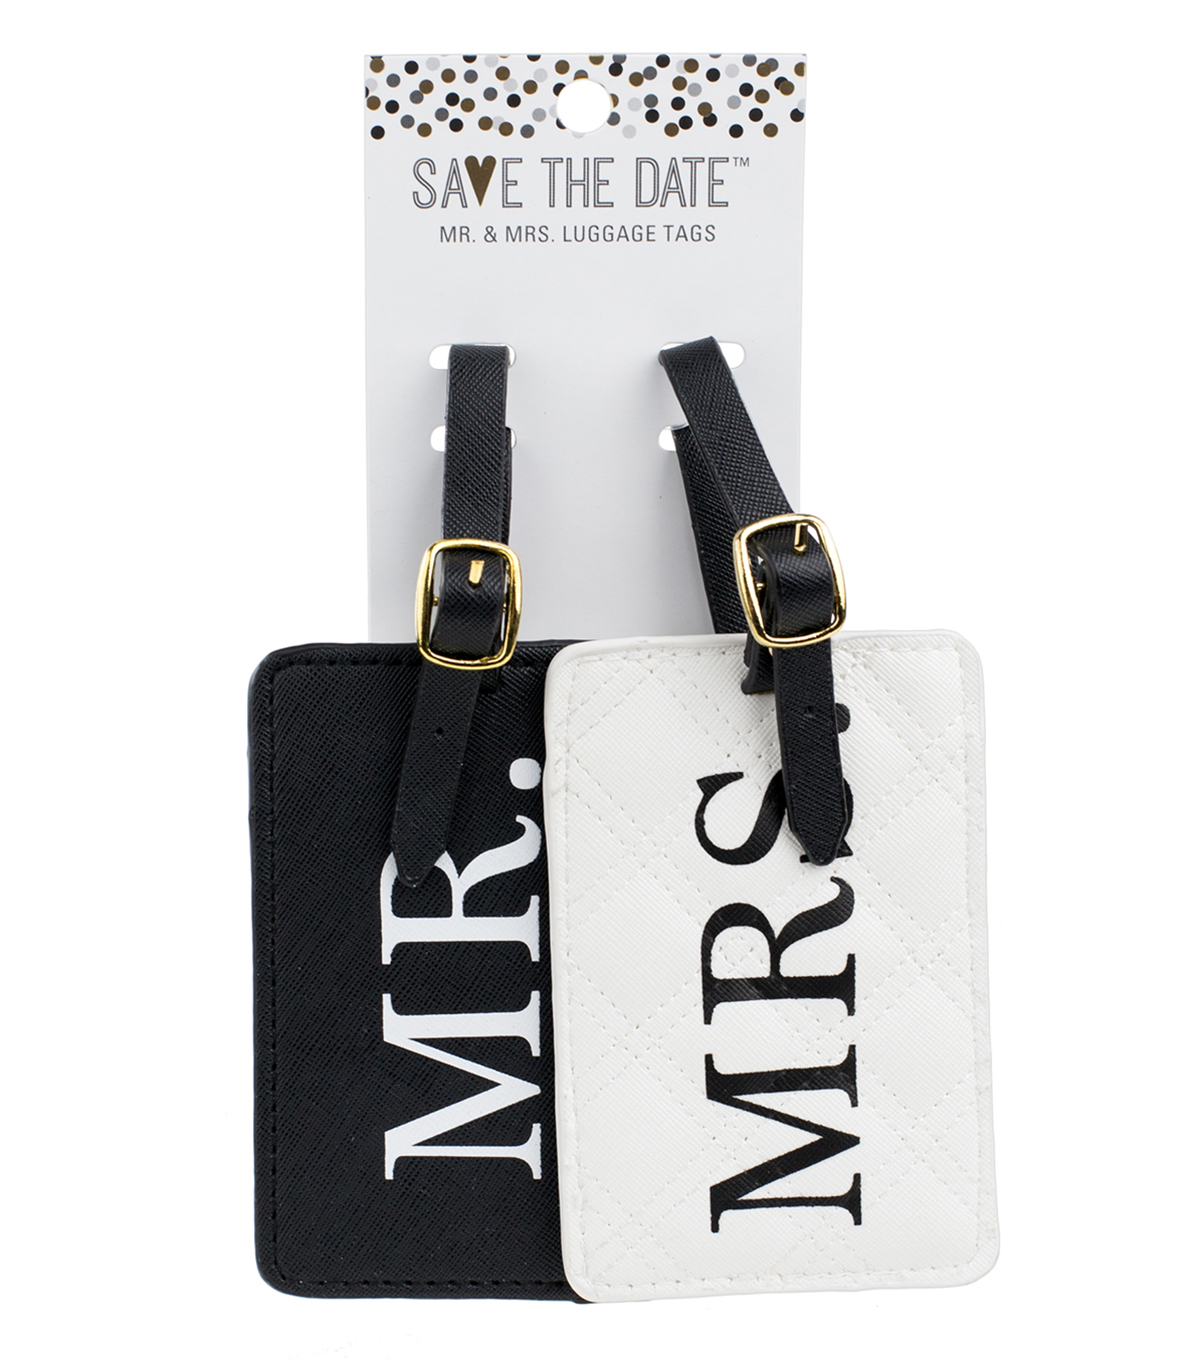 Save The Date Mr. & Mrs. Luggage Tags-Black & White | JOANN